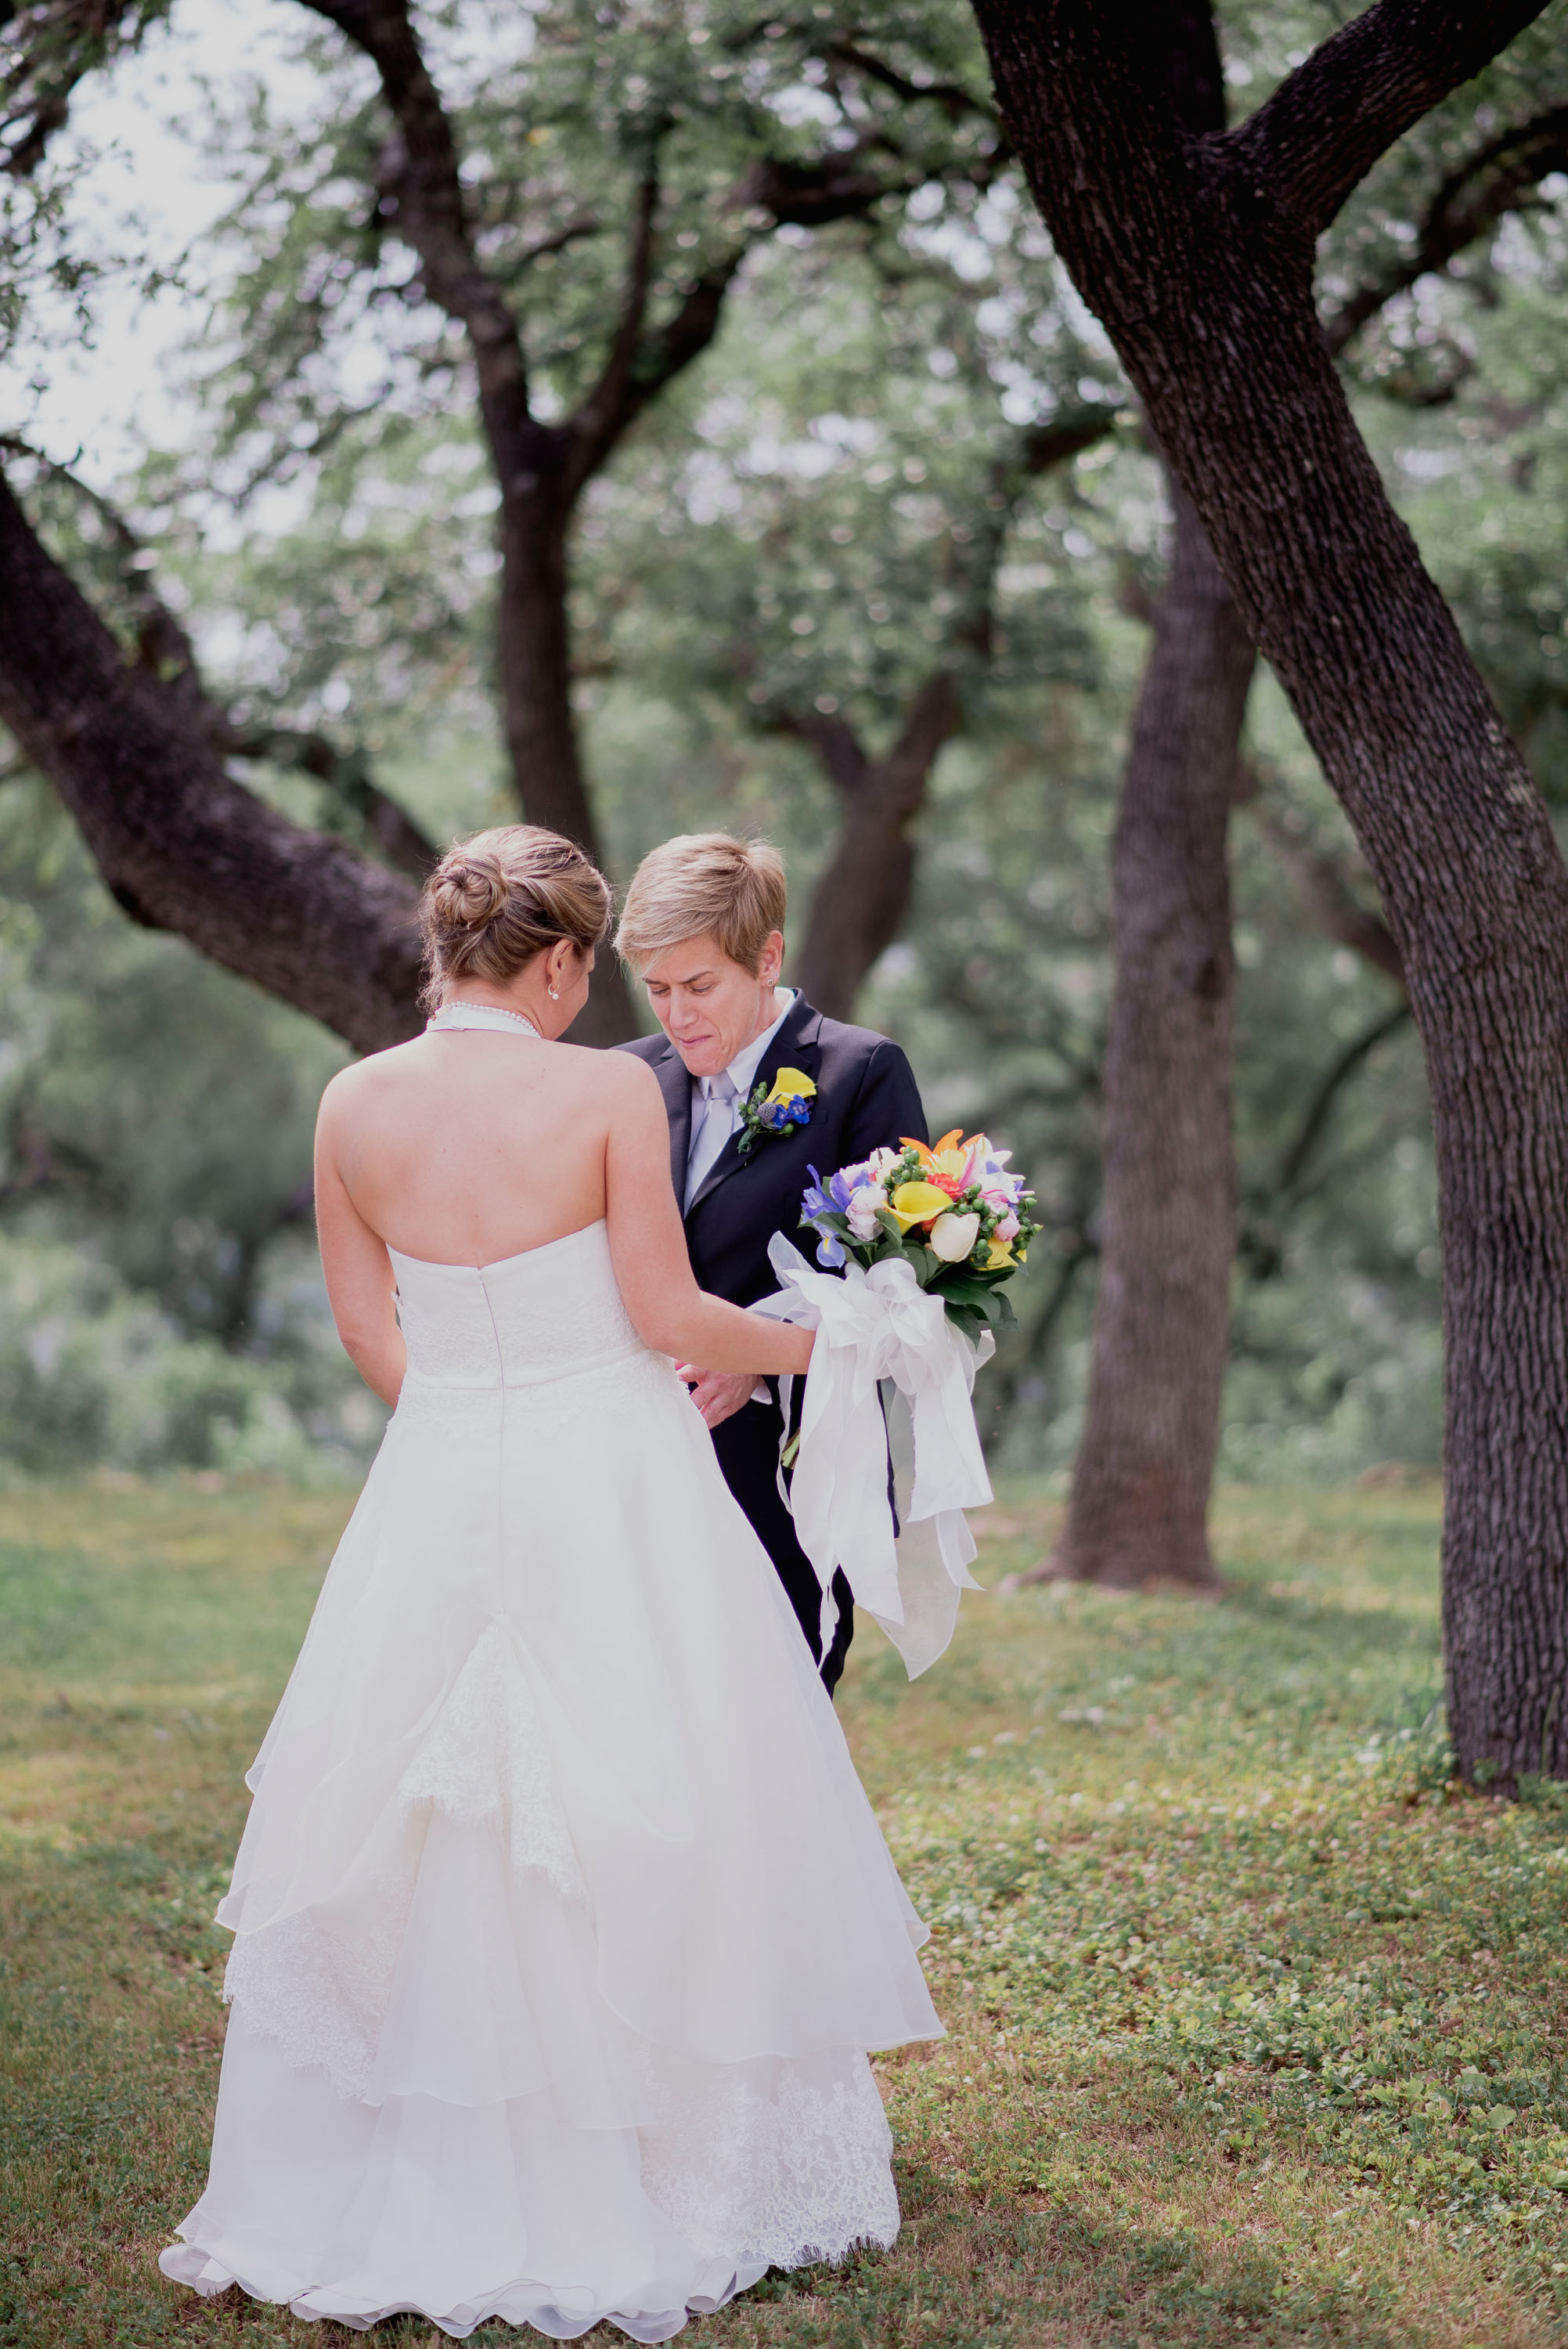 Austin Wedding Photographer Hacienda Del Lago LBGT Elegant015.jpg